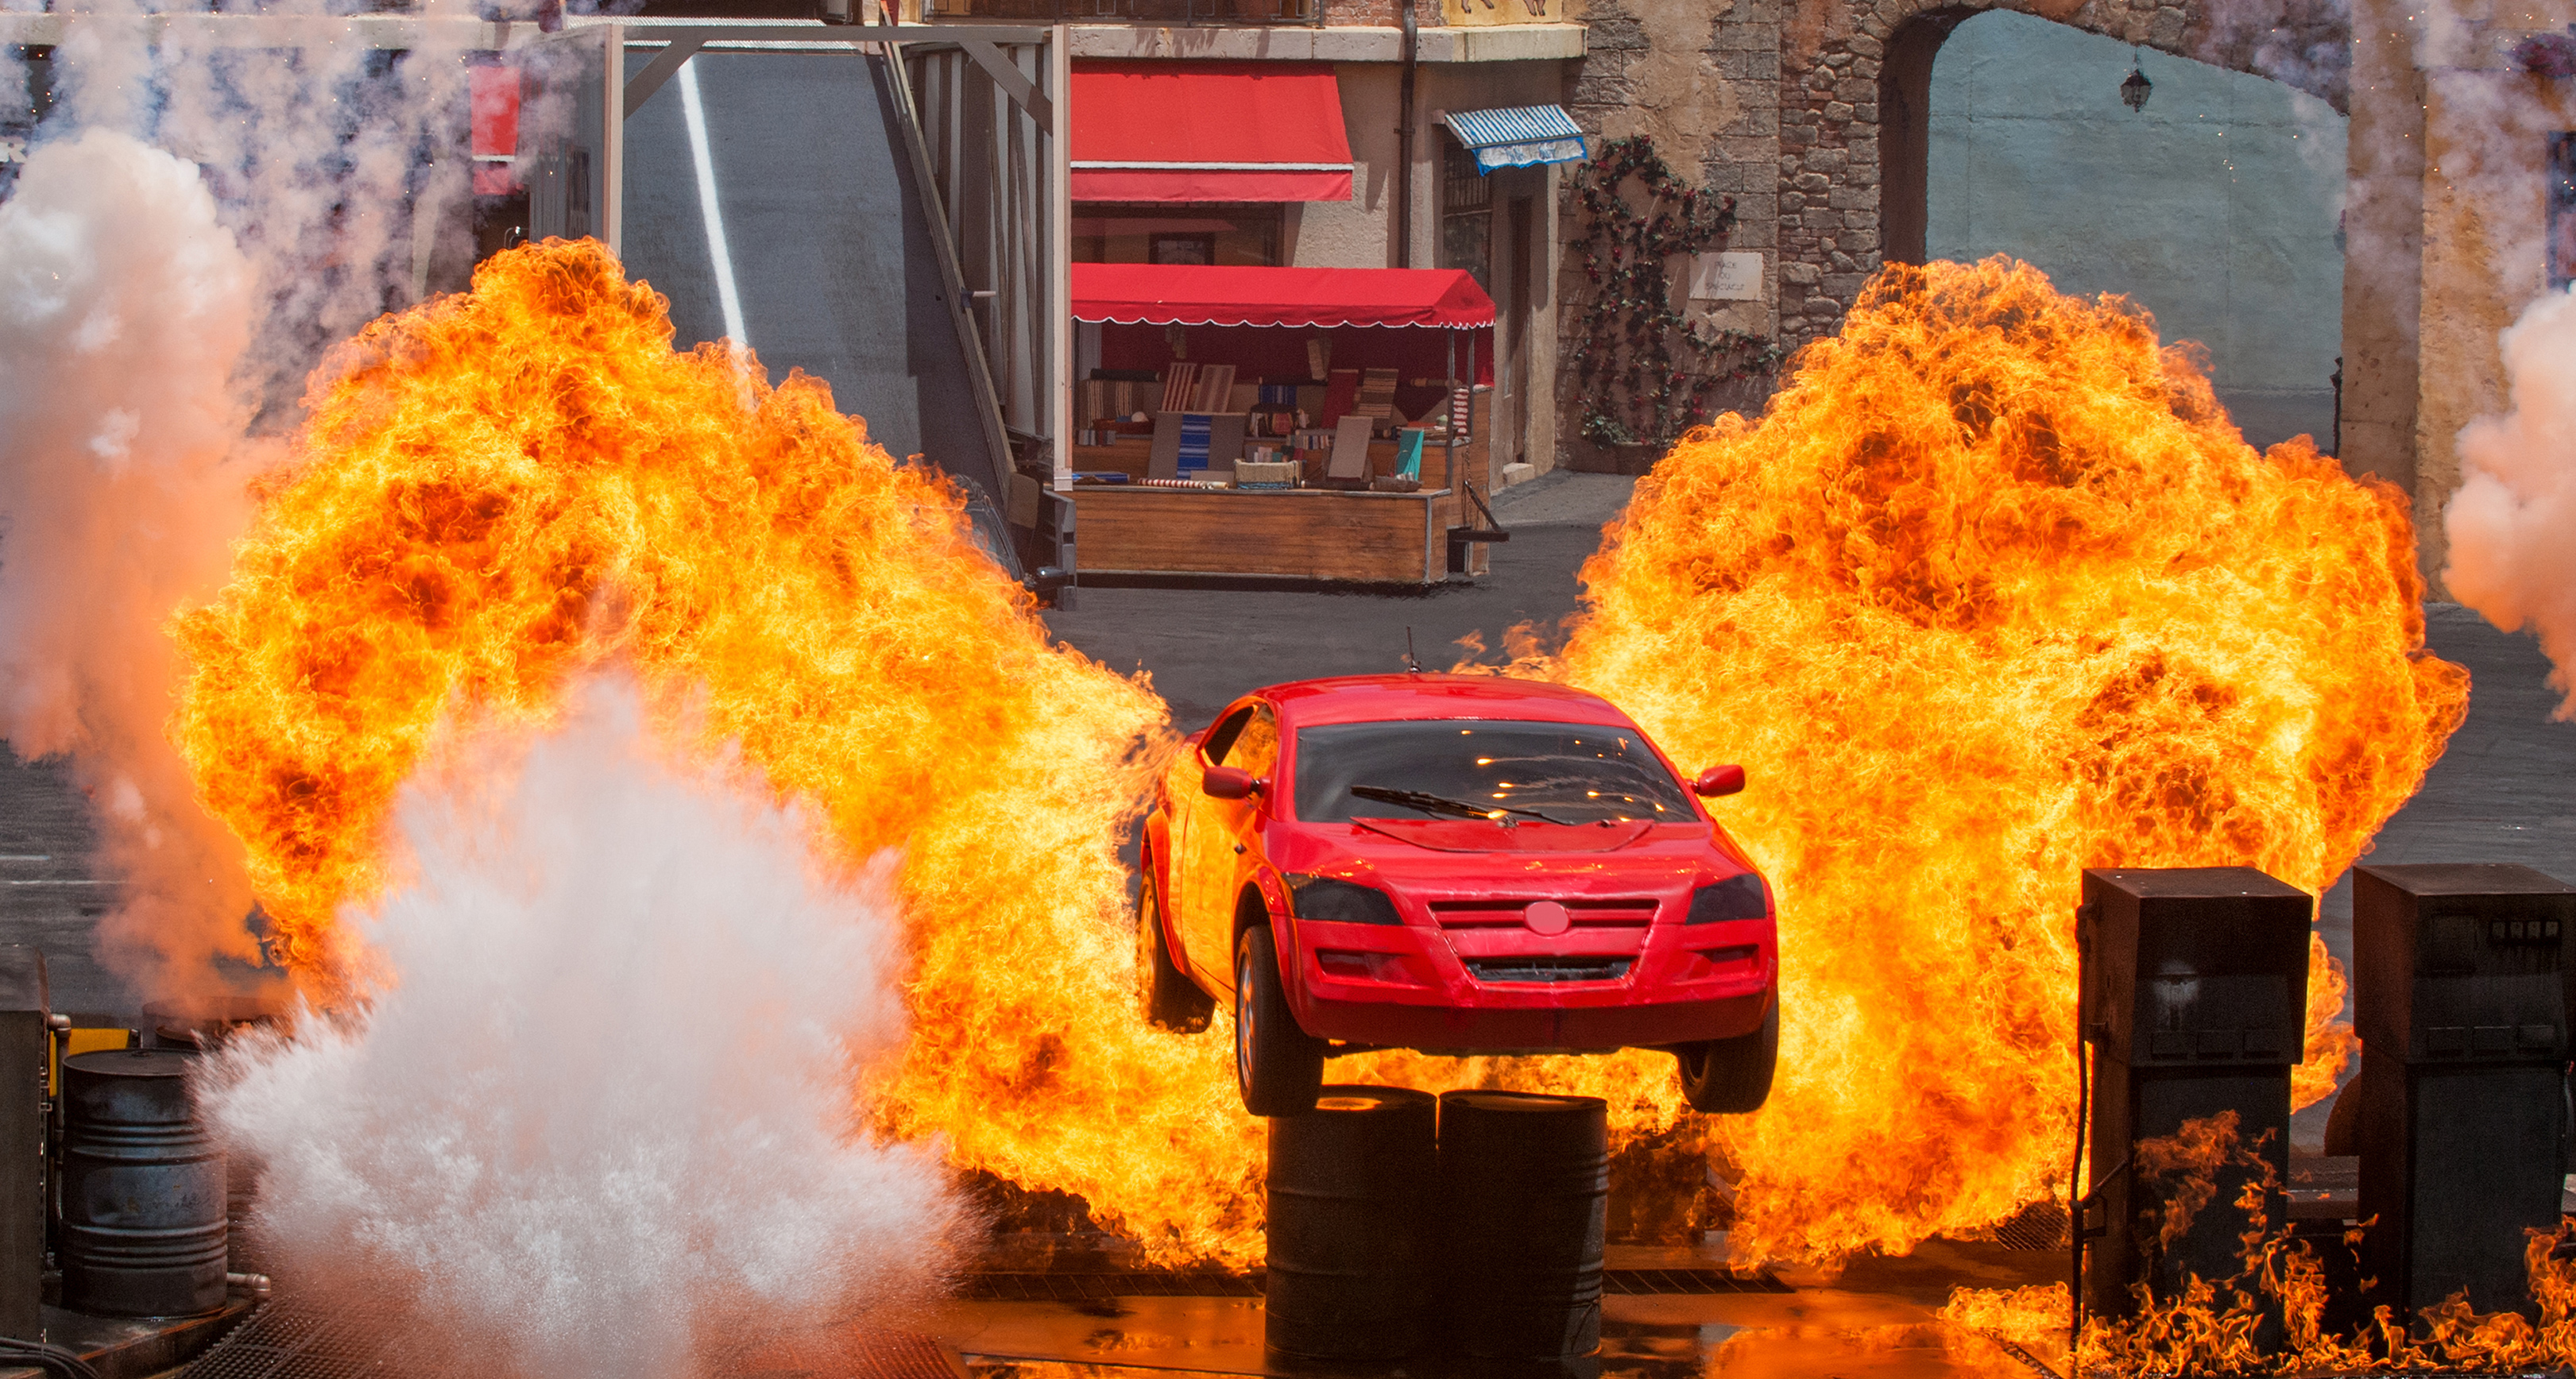 Explosions nearly engulf a car as it launches into the air at Lights, Motors, Action! Extreme Stunt Show